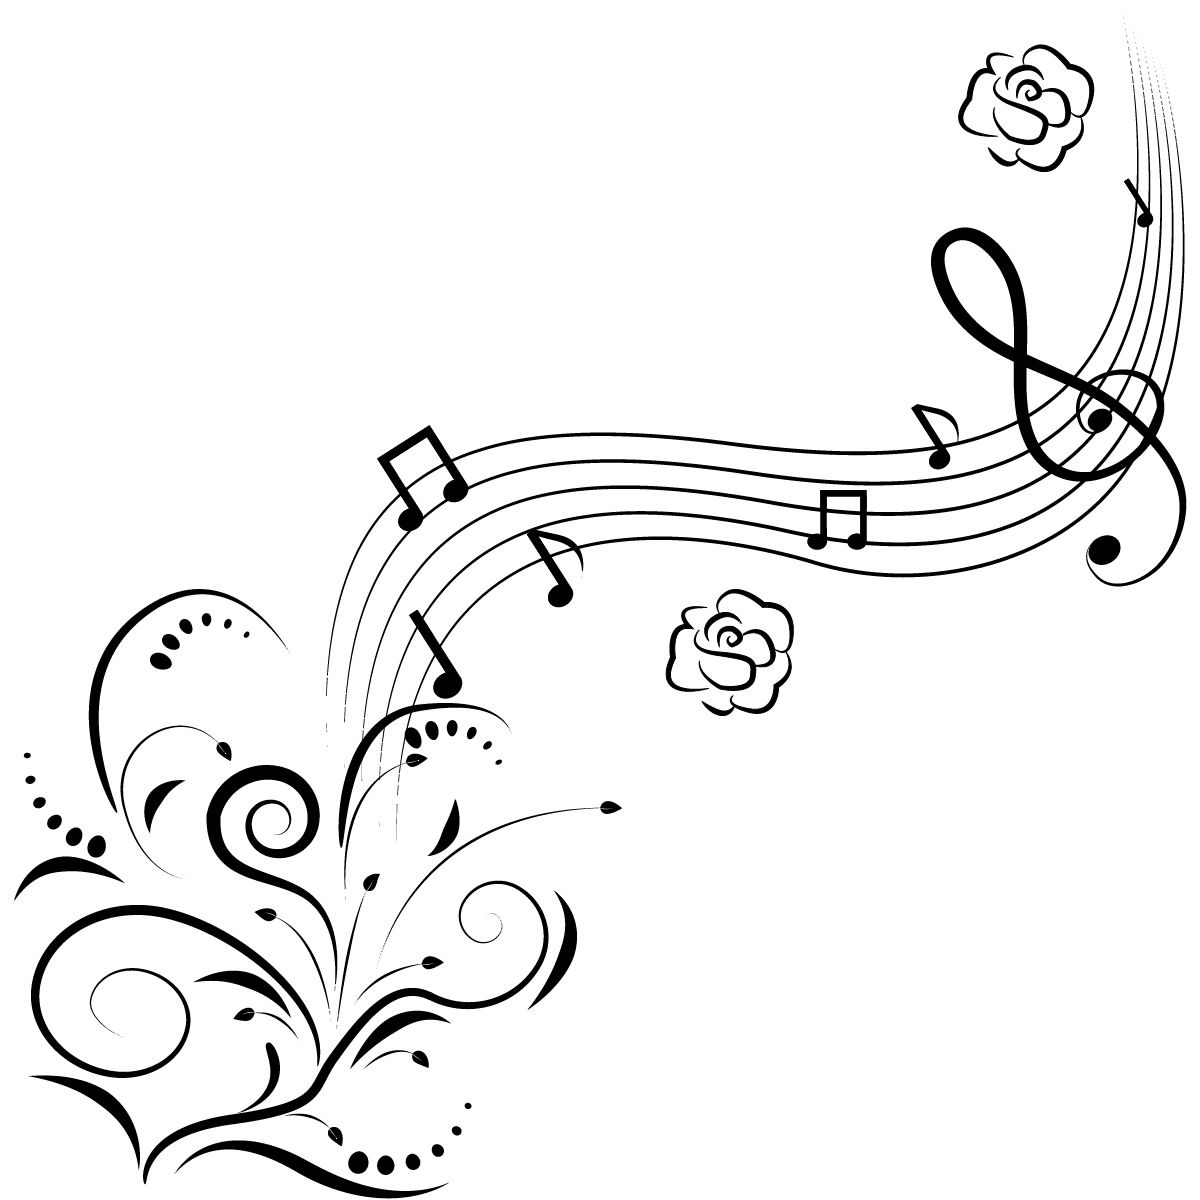 music notes backgrounds floral - photo #44